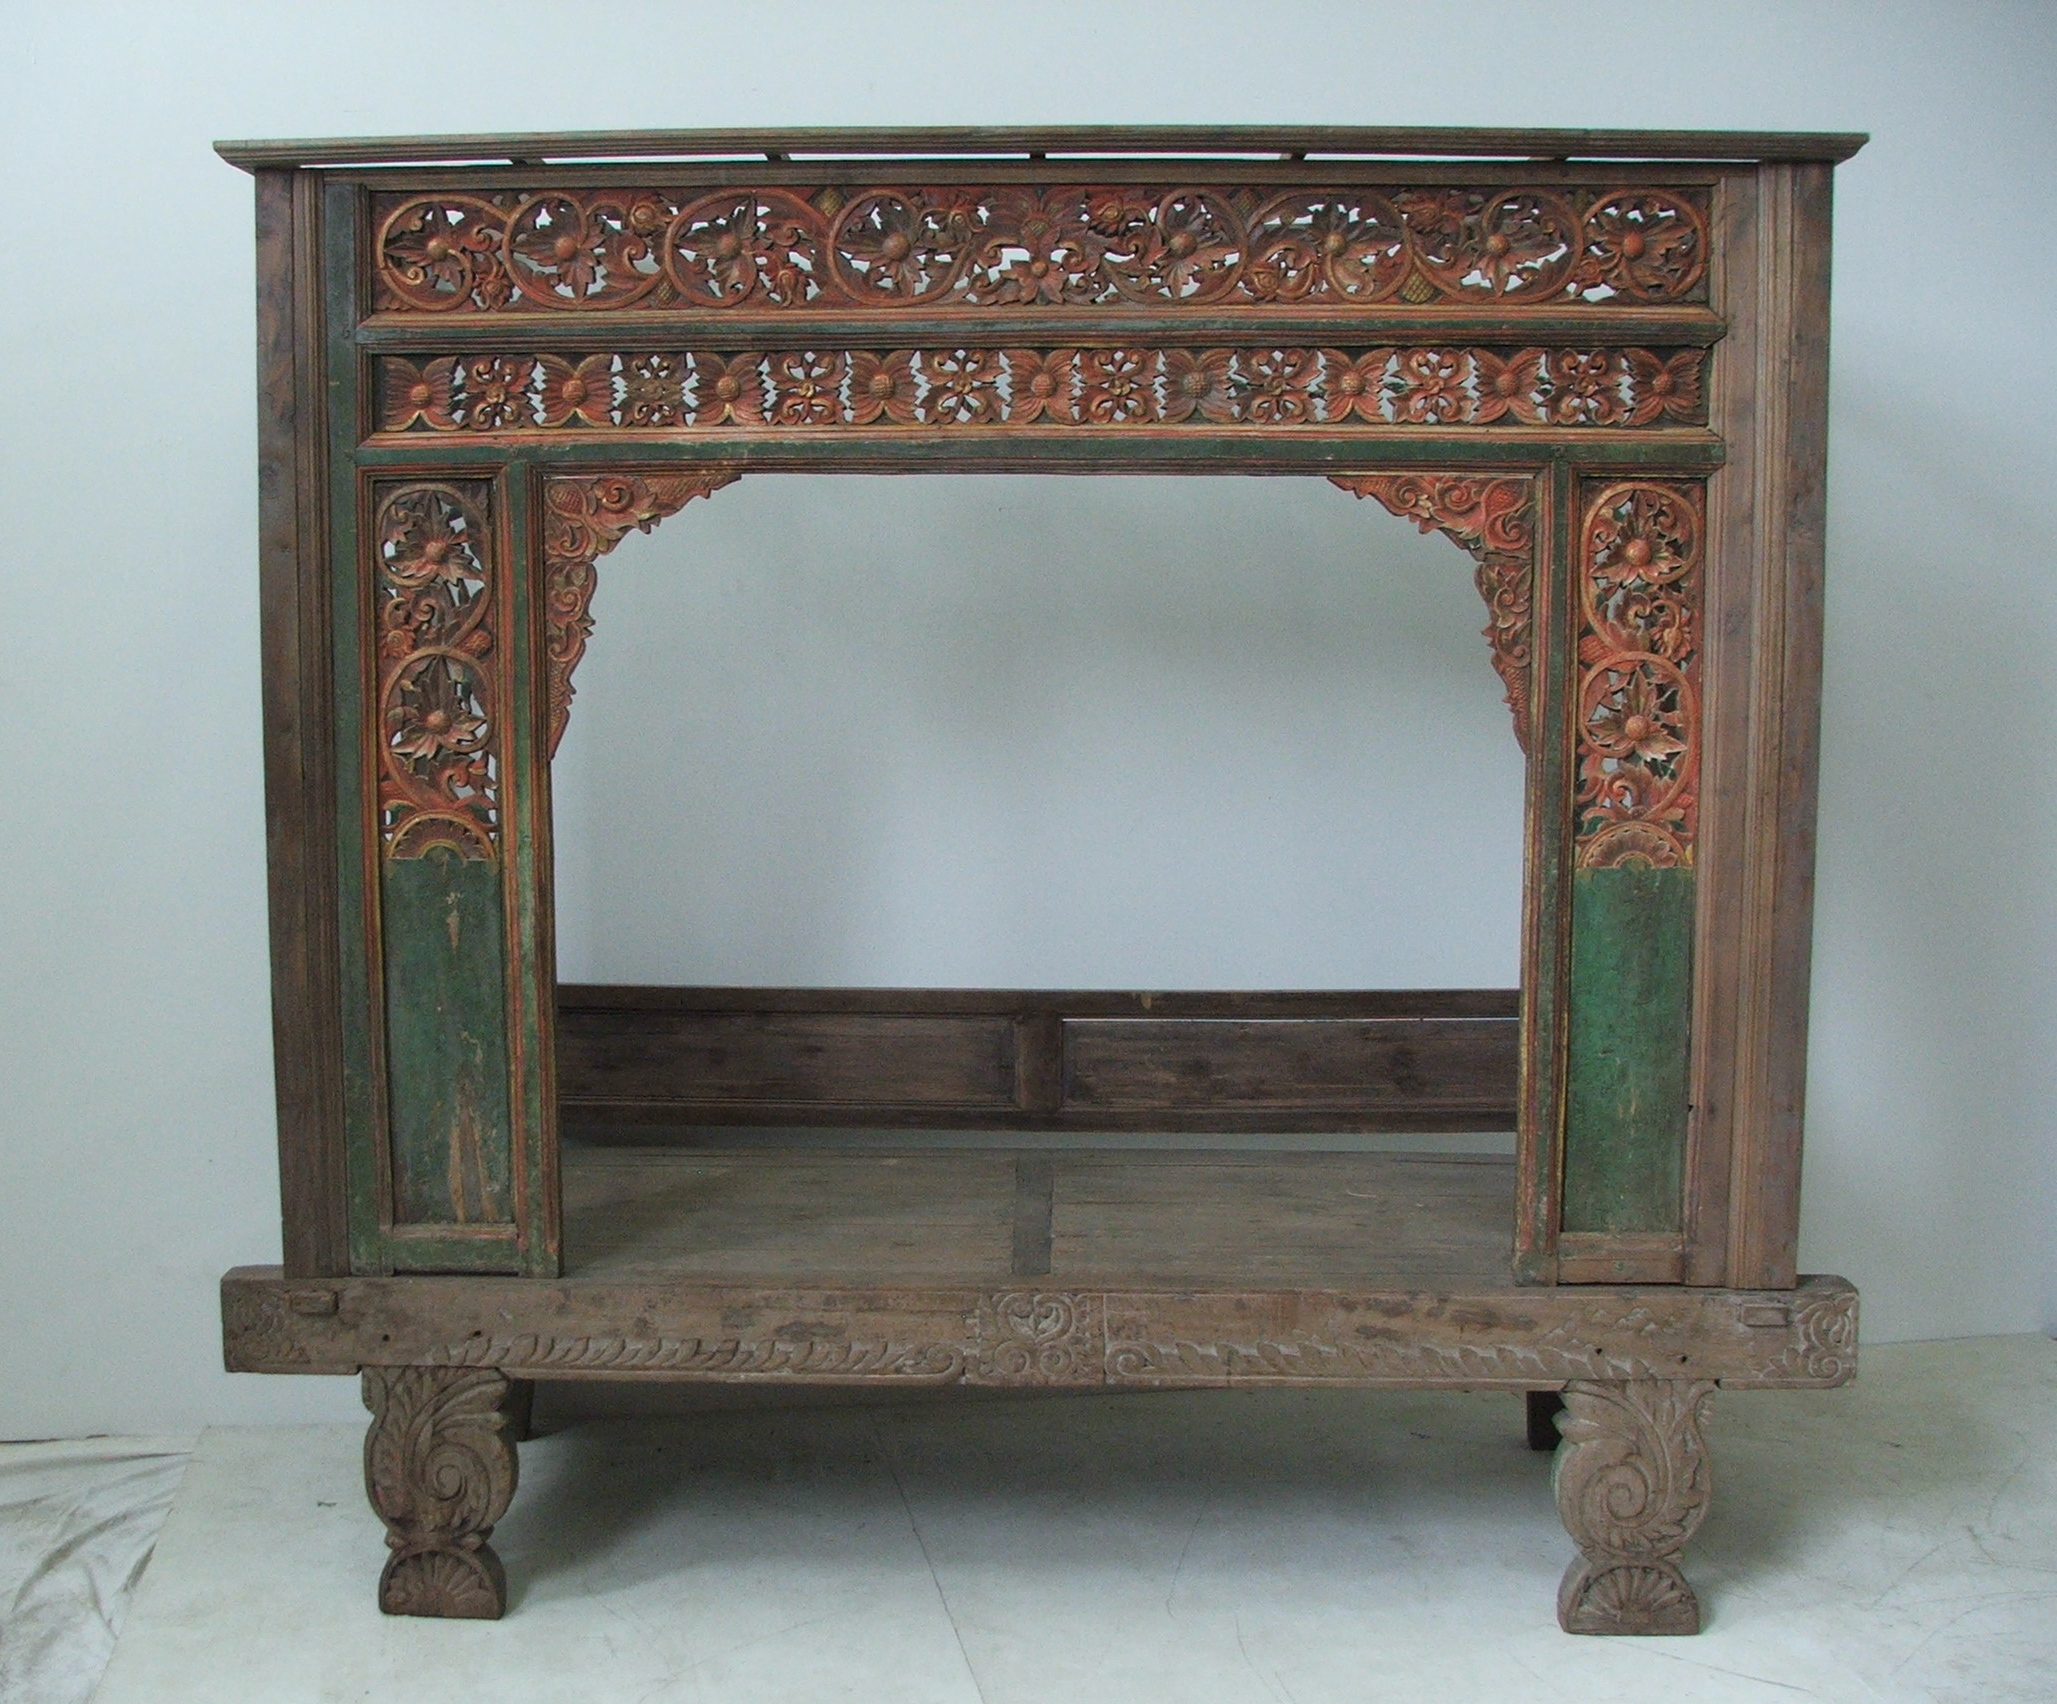 Antique Indonesian Wedding Bed. Indonesian Wedding Bed